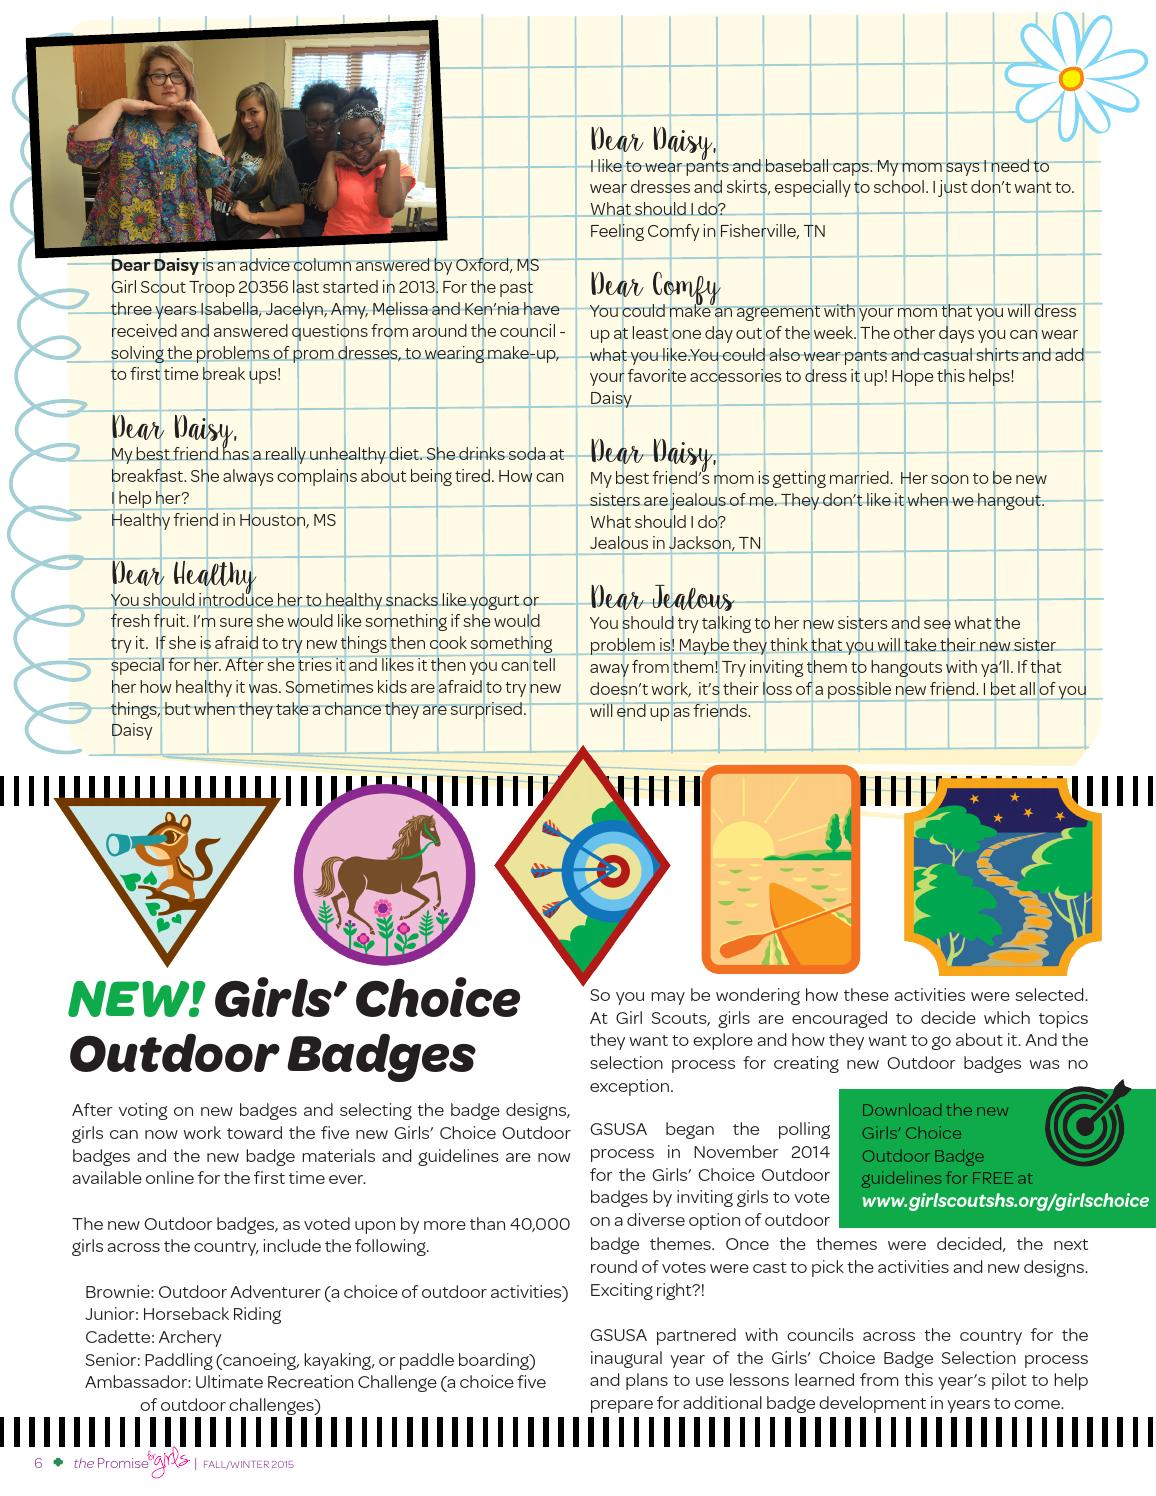 Girl Scouts Heart of the South: The Promise - For Girls